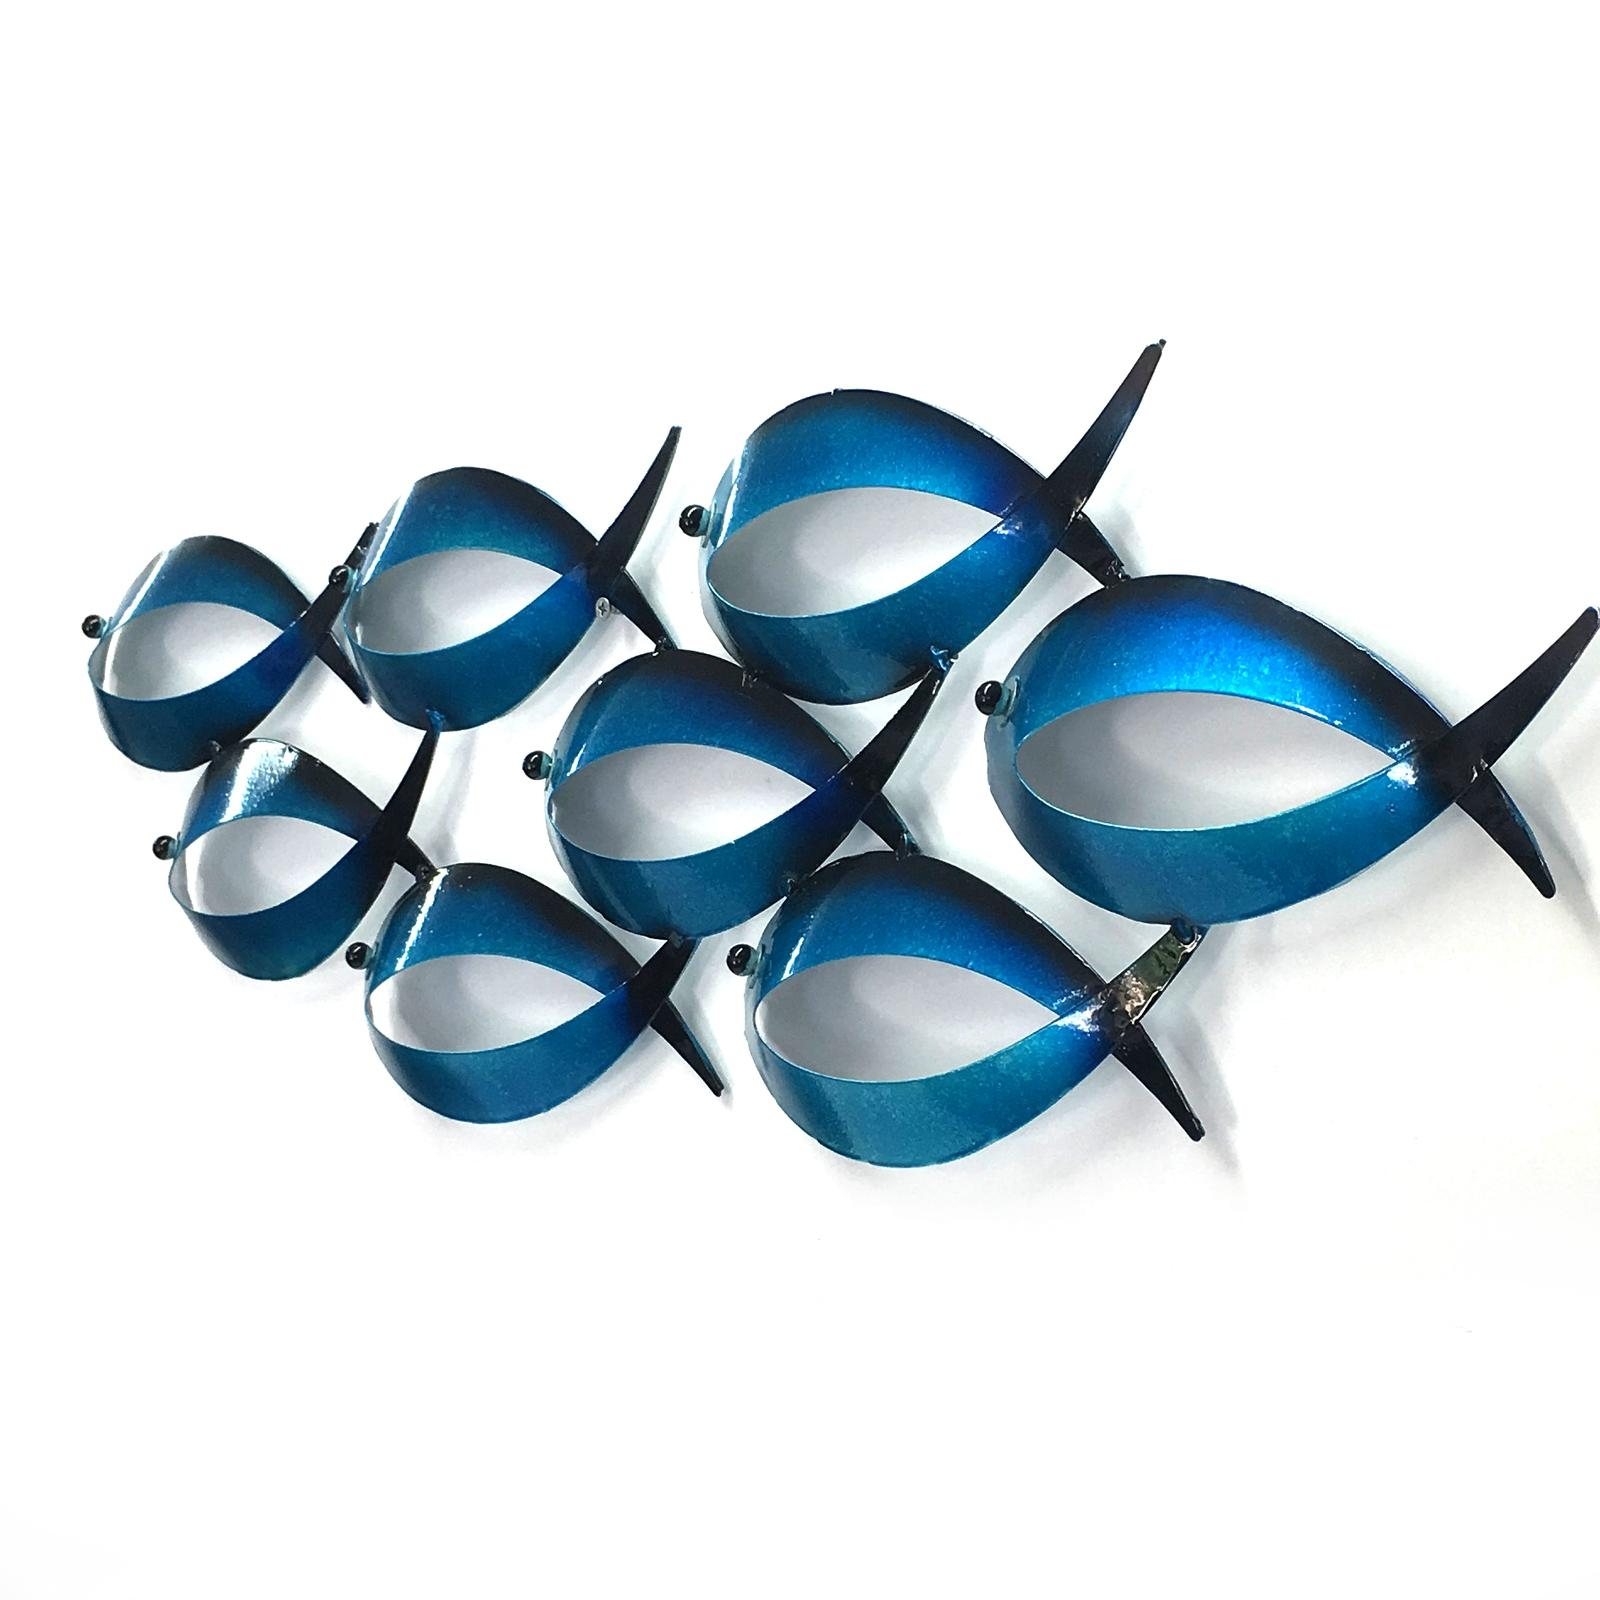 School Of Fish Metal Wall Art Hanging Sculpture Iron Beach Theme Regarding Metal School Of Fish Wall Art (Image 11 of 20)